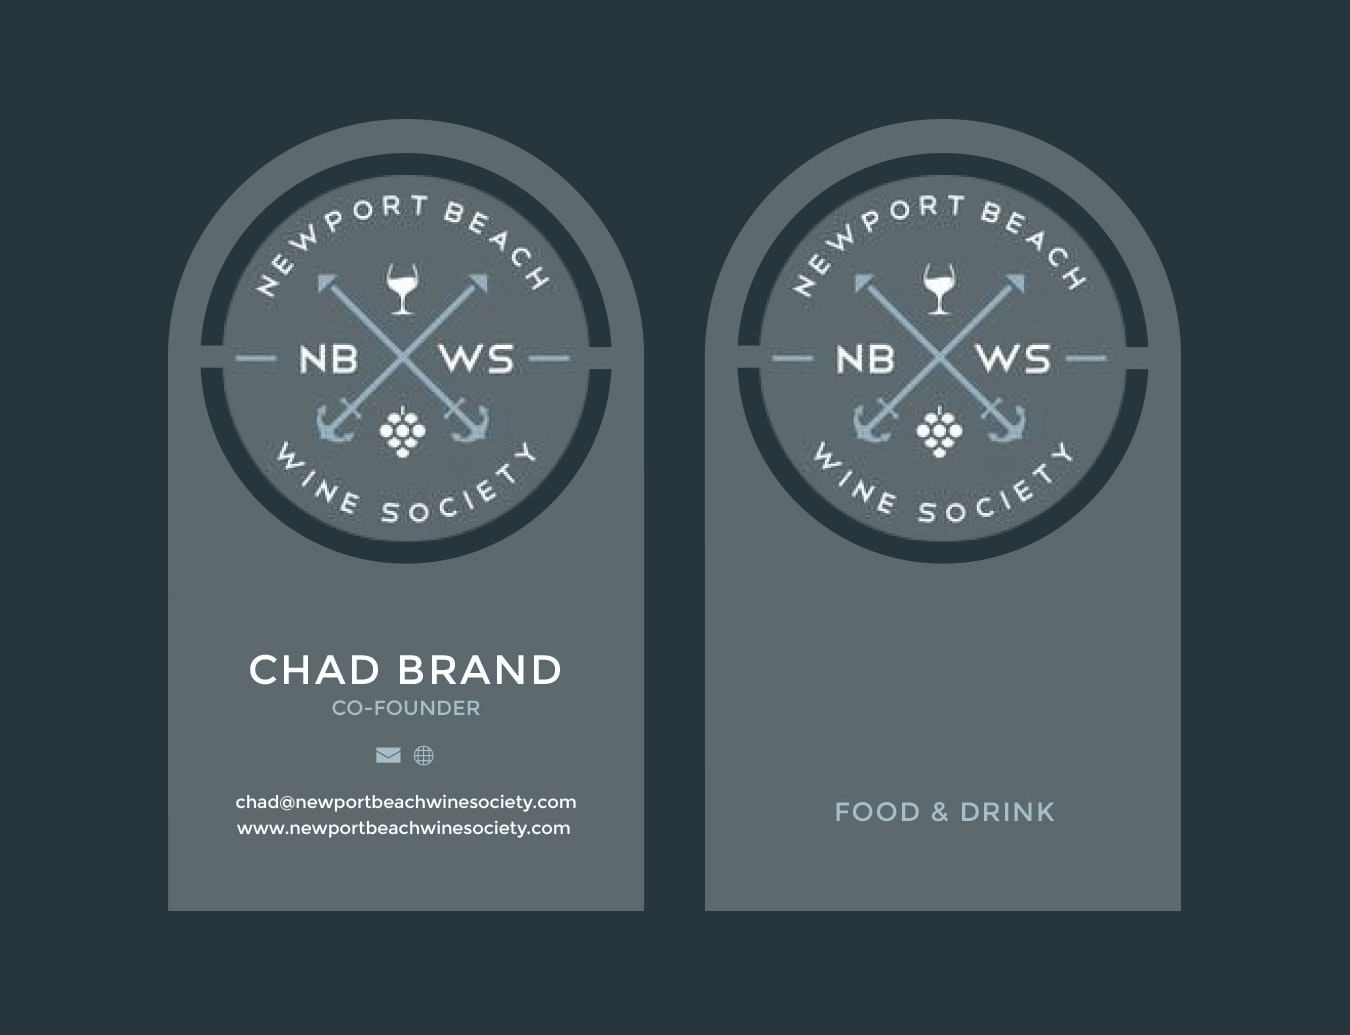 ask yourself if you really need a printed business card